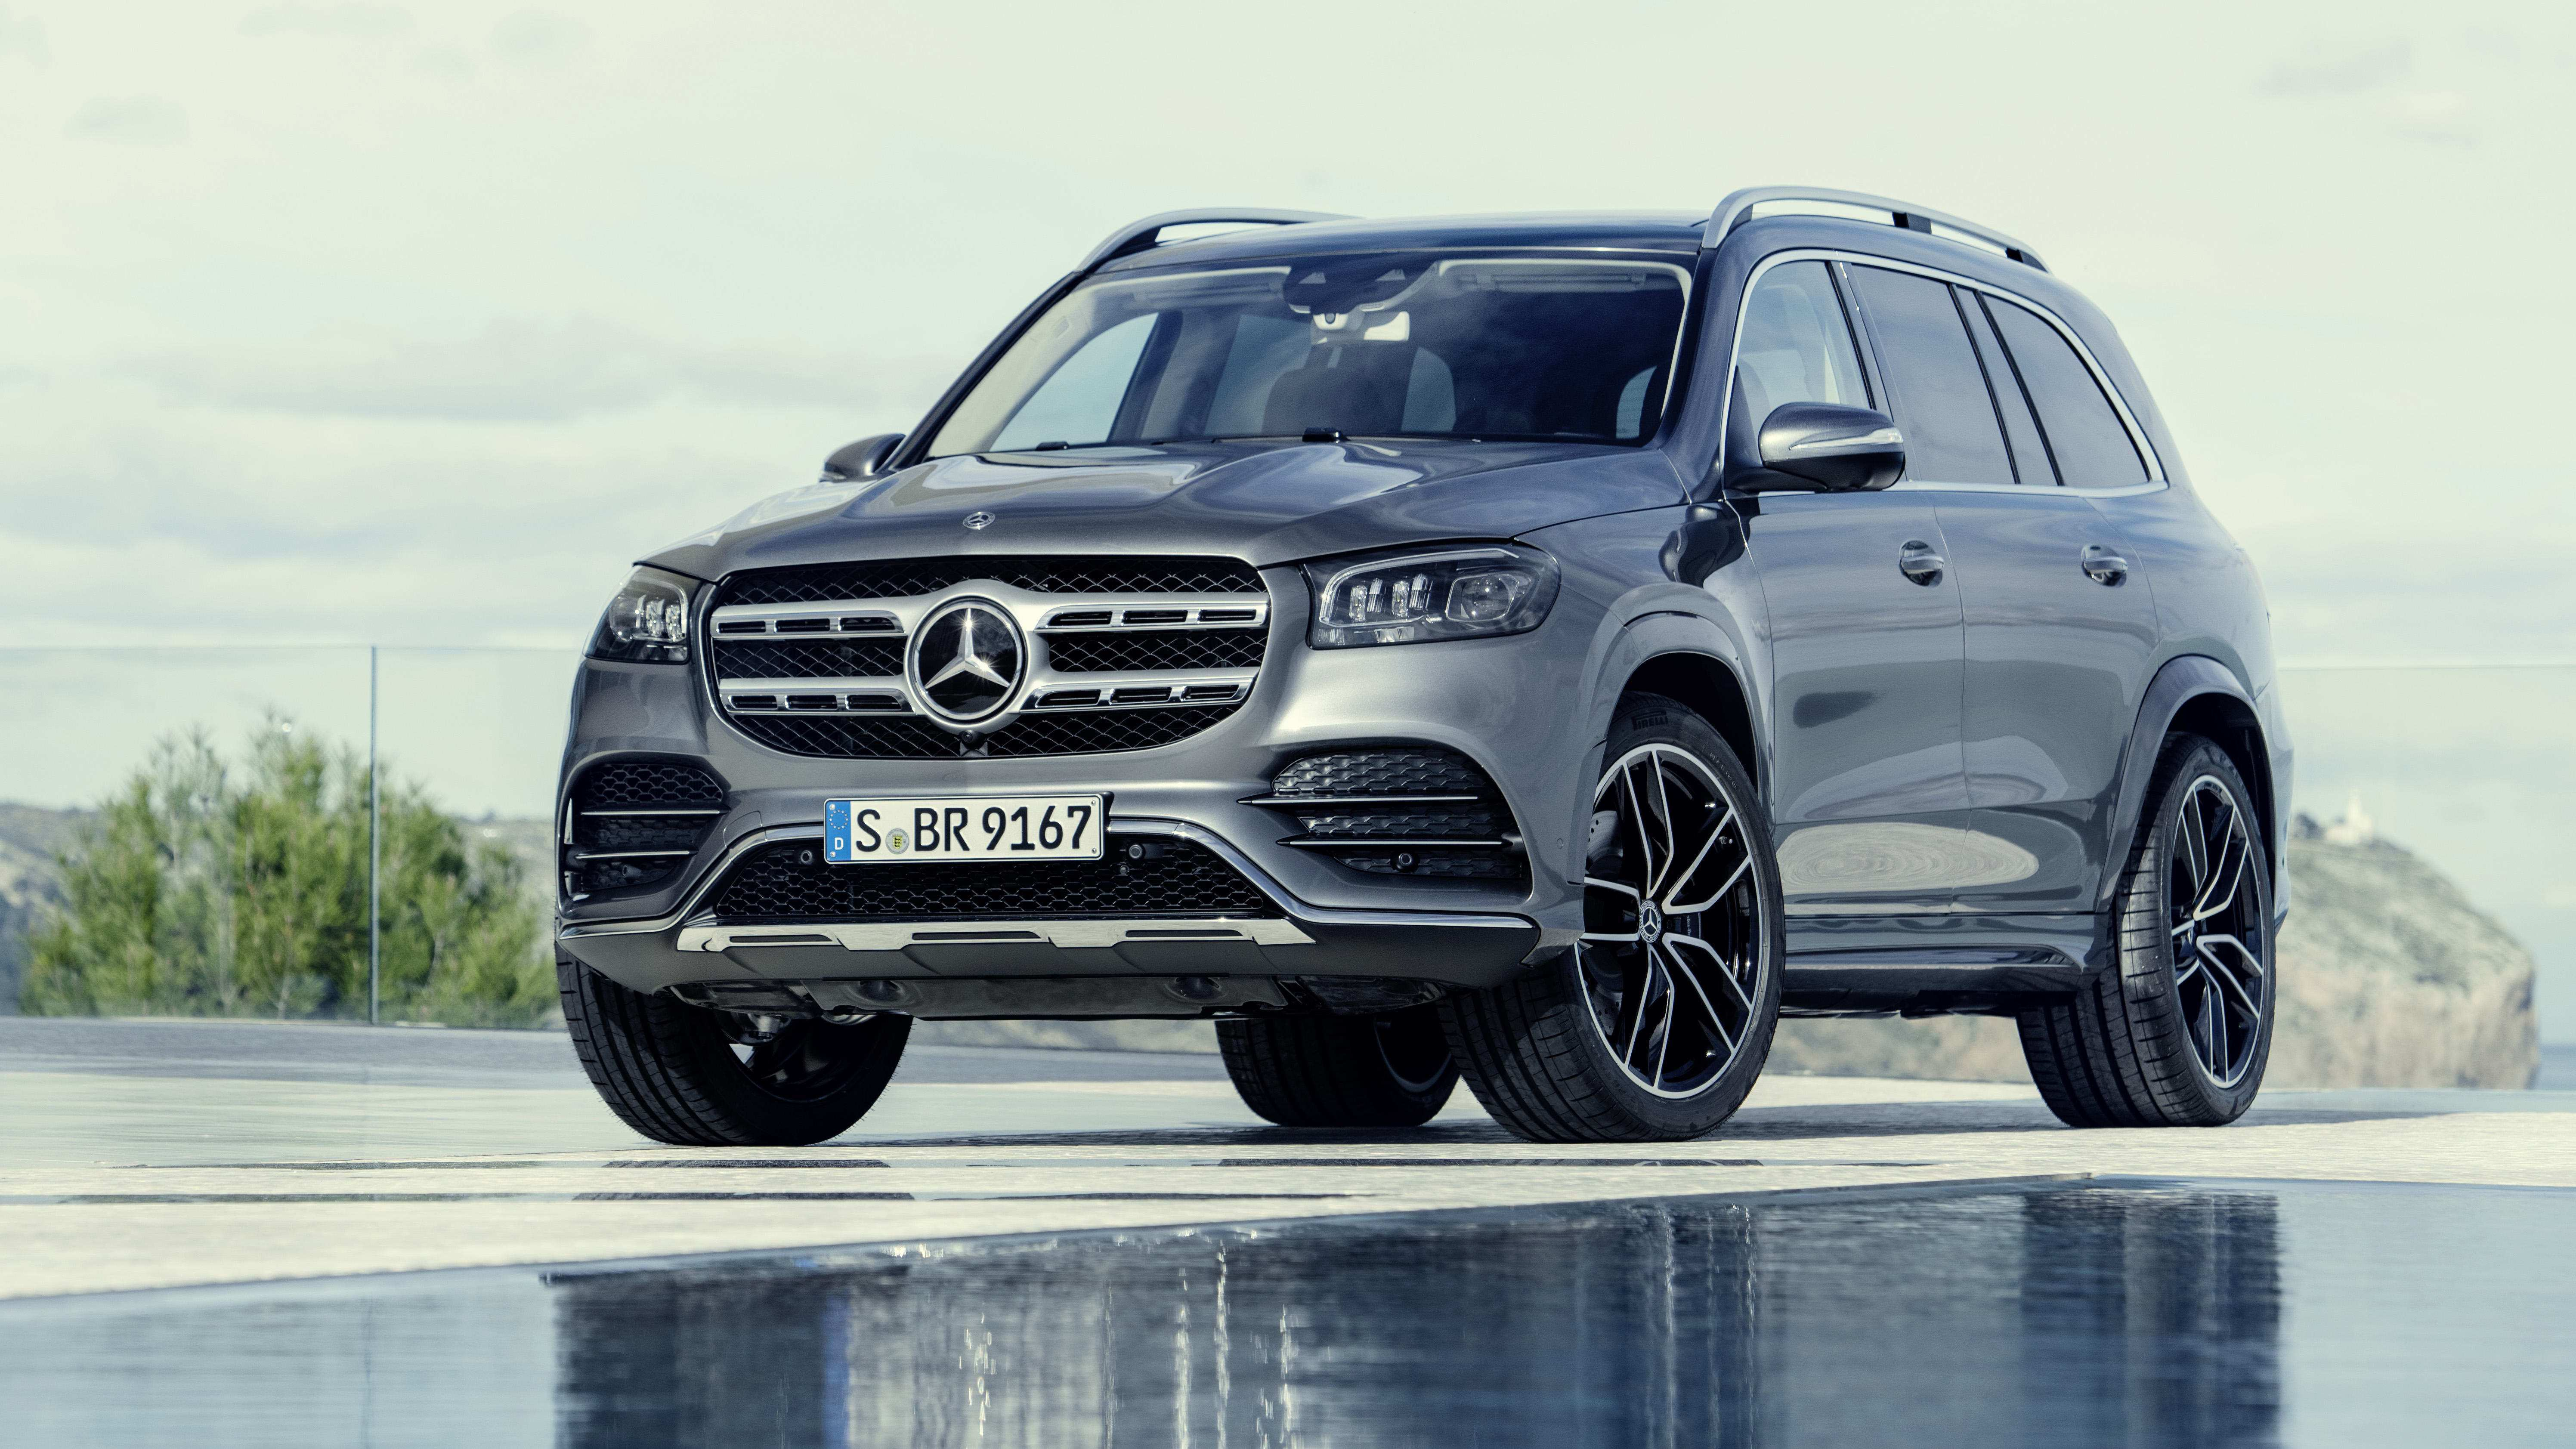 40 New 2020 Mercedes GLS Price